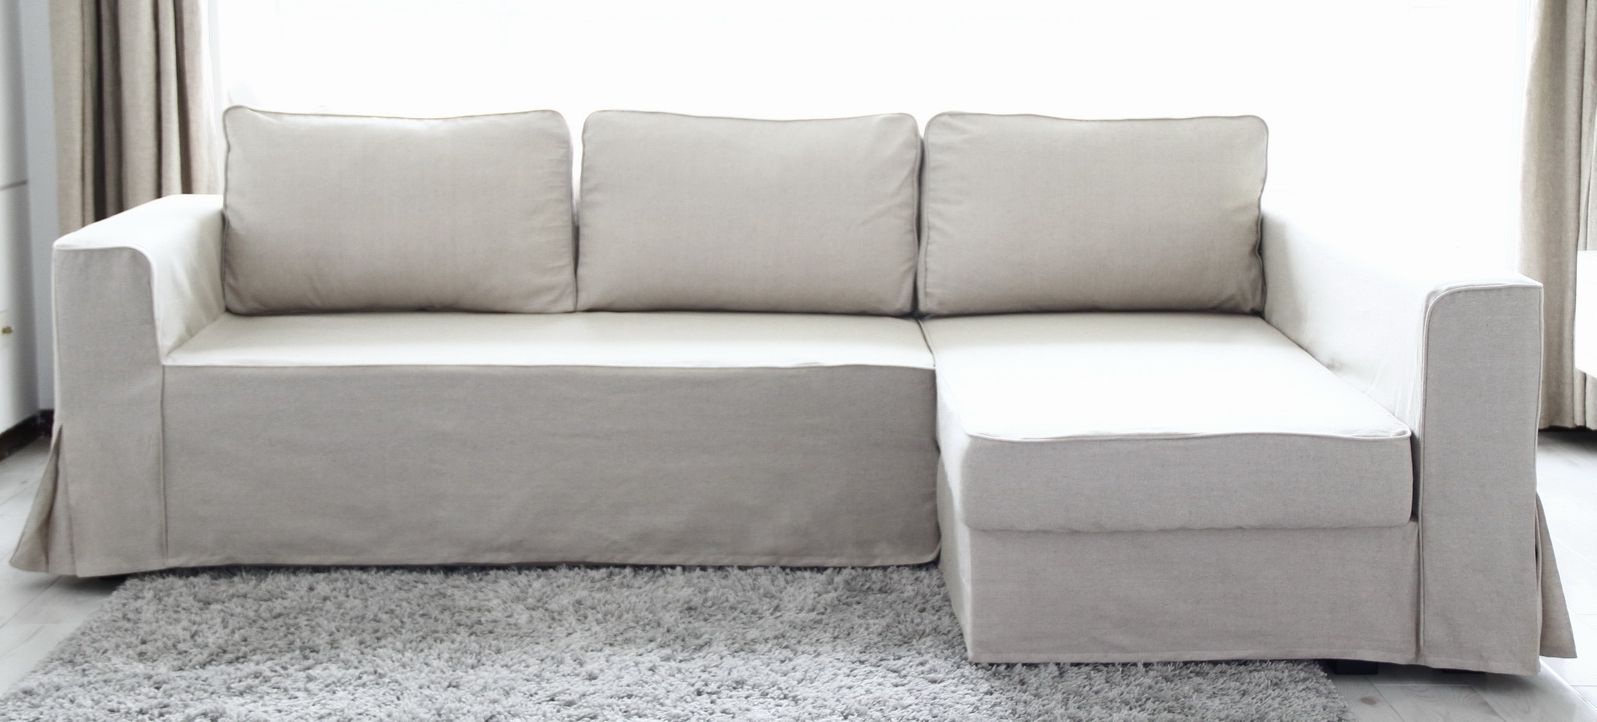 Current Loose Fit Linen Manstad Sofa Slipcovers Now Available Throughout Sectional Sofas With Covers (View 4 of 20)